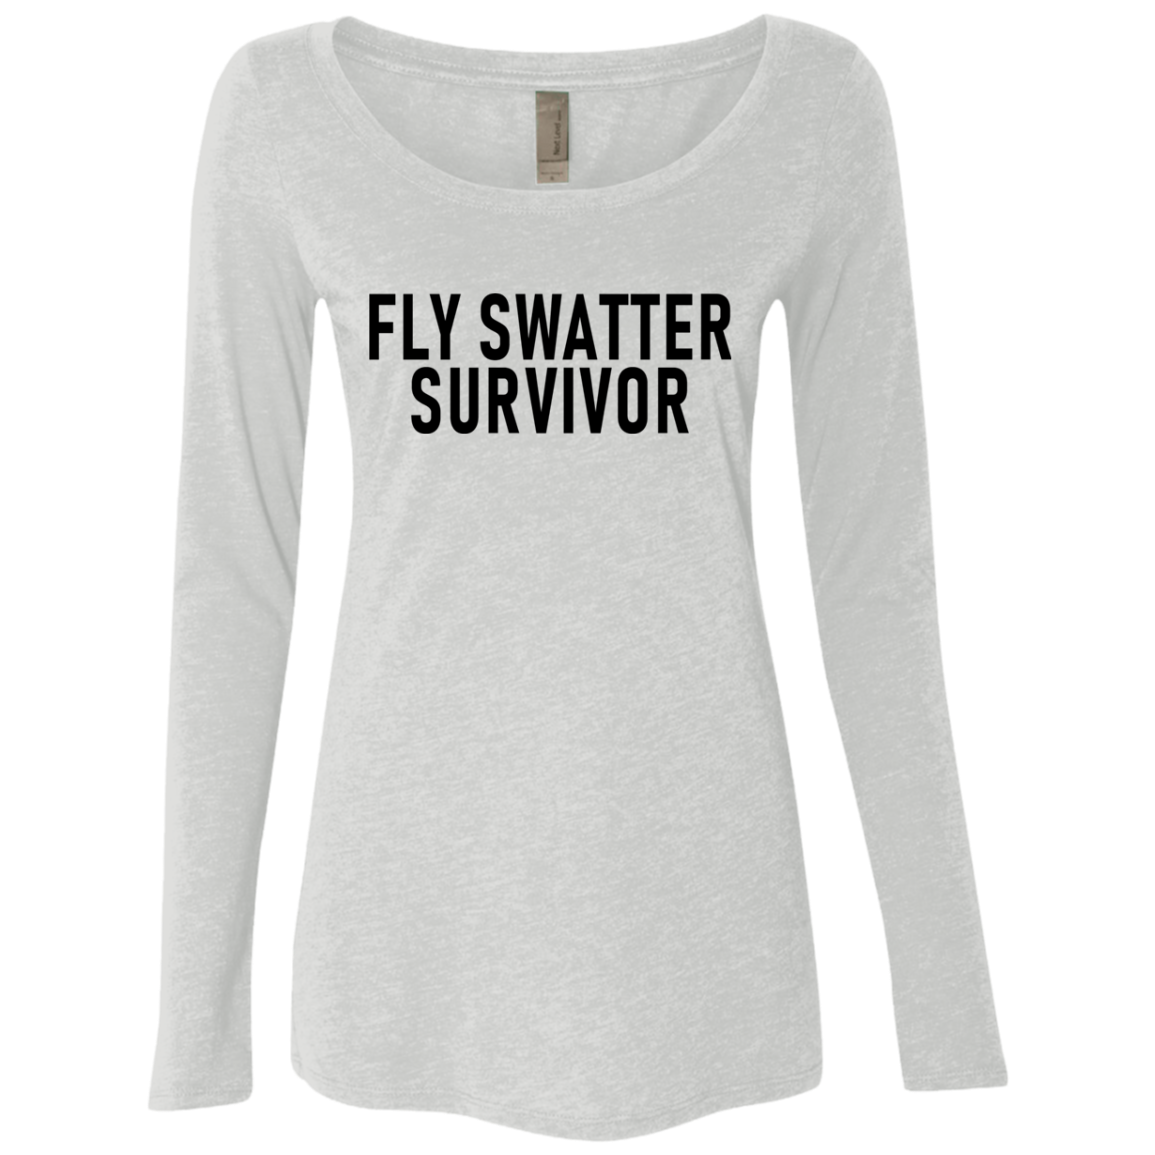 Fly Swatter Survivor Women's Long Sleeve Tee